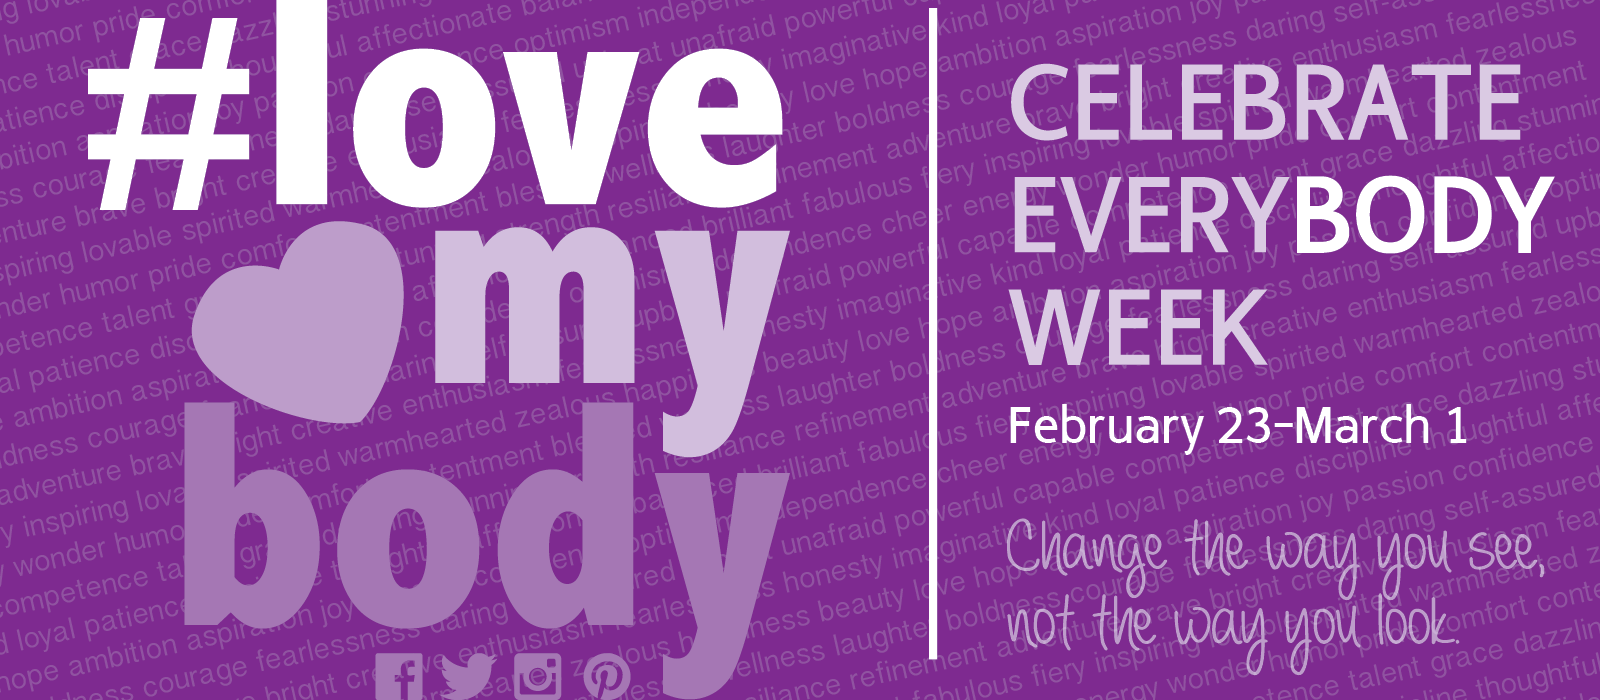 This week, share postive thoughts about your body using the hastag #LoveMyBody